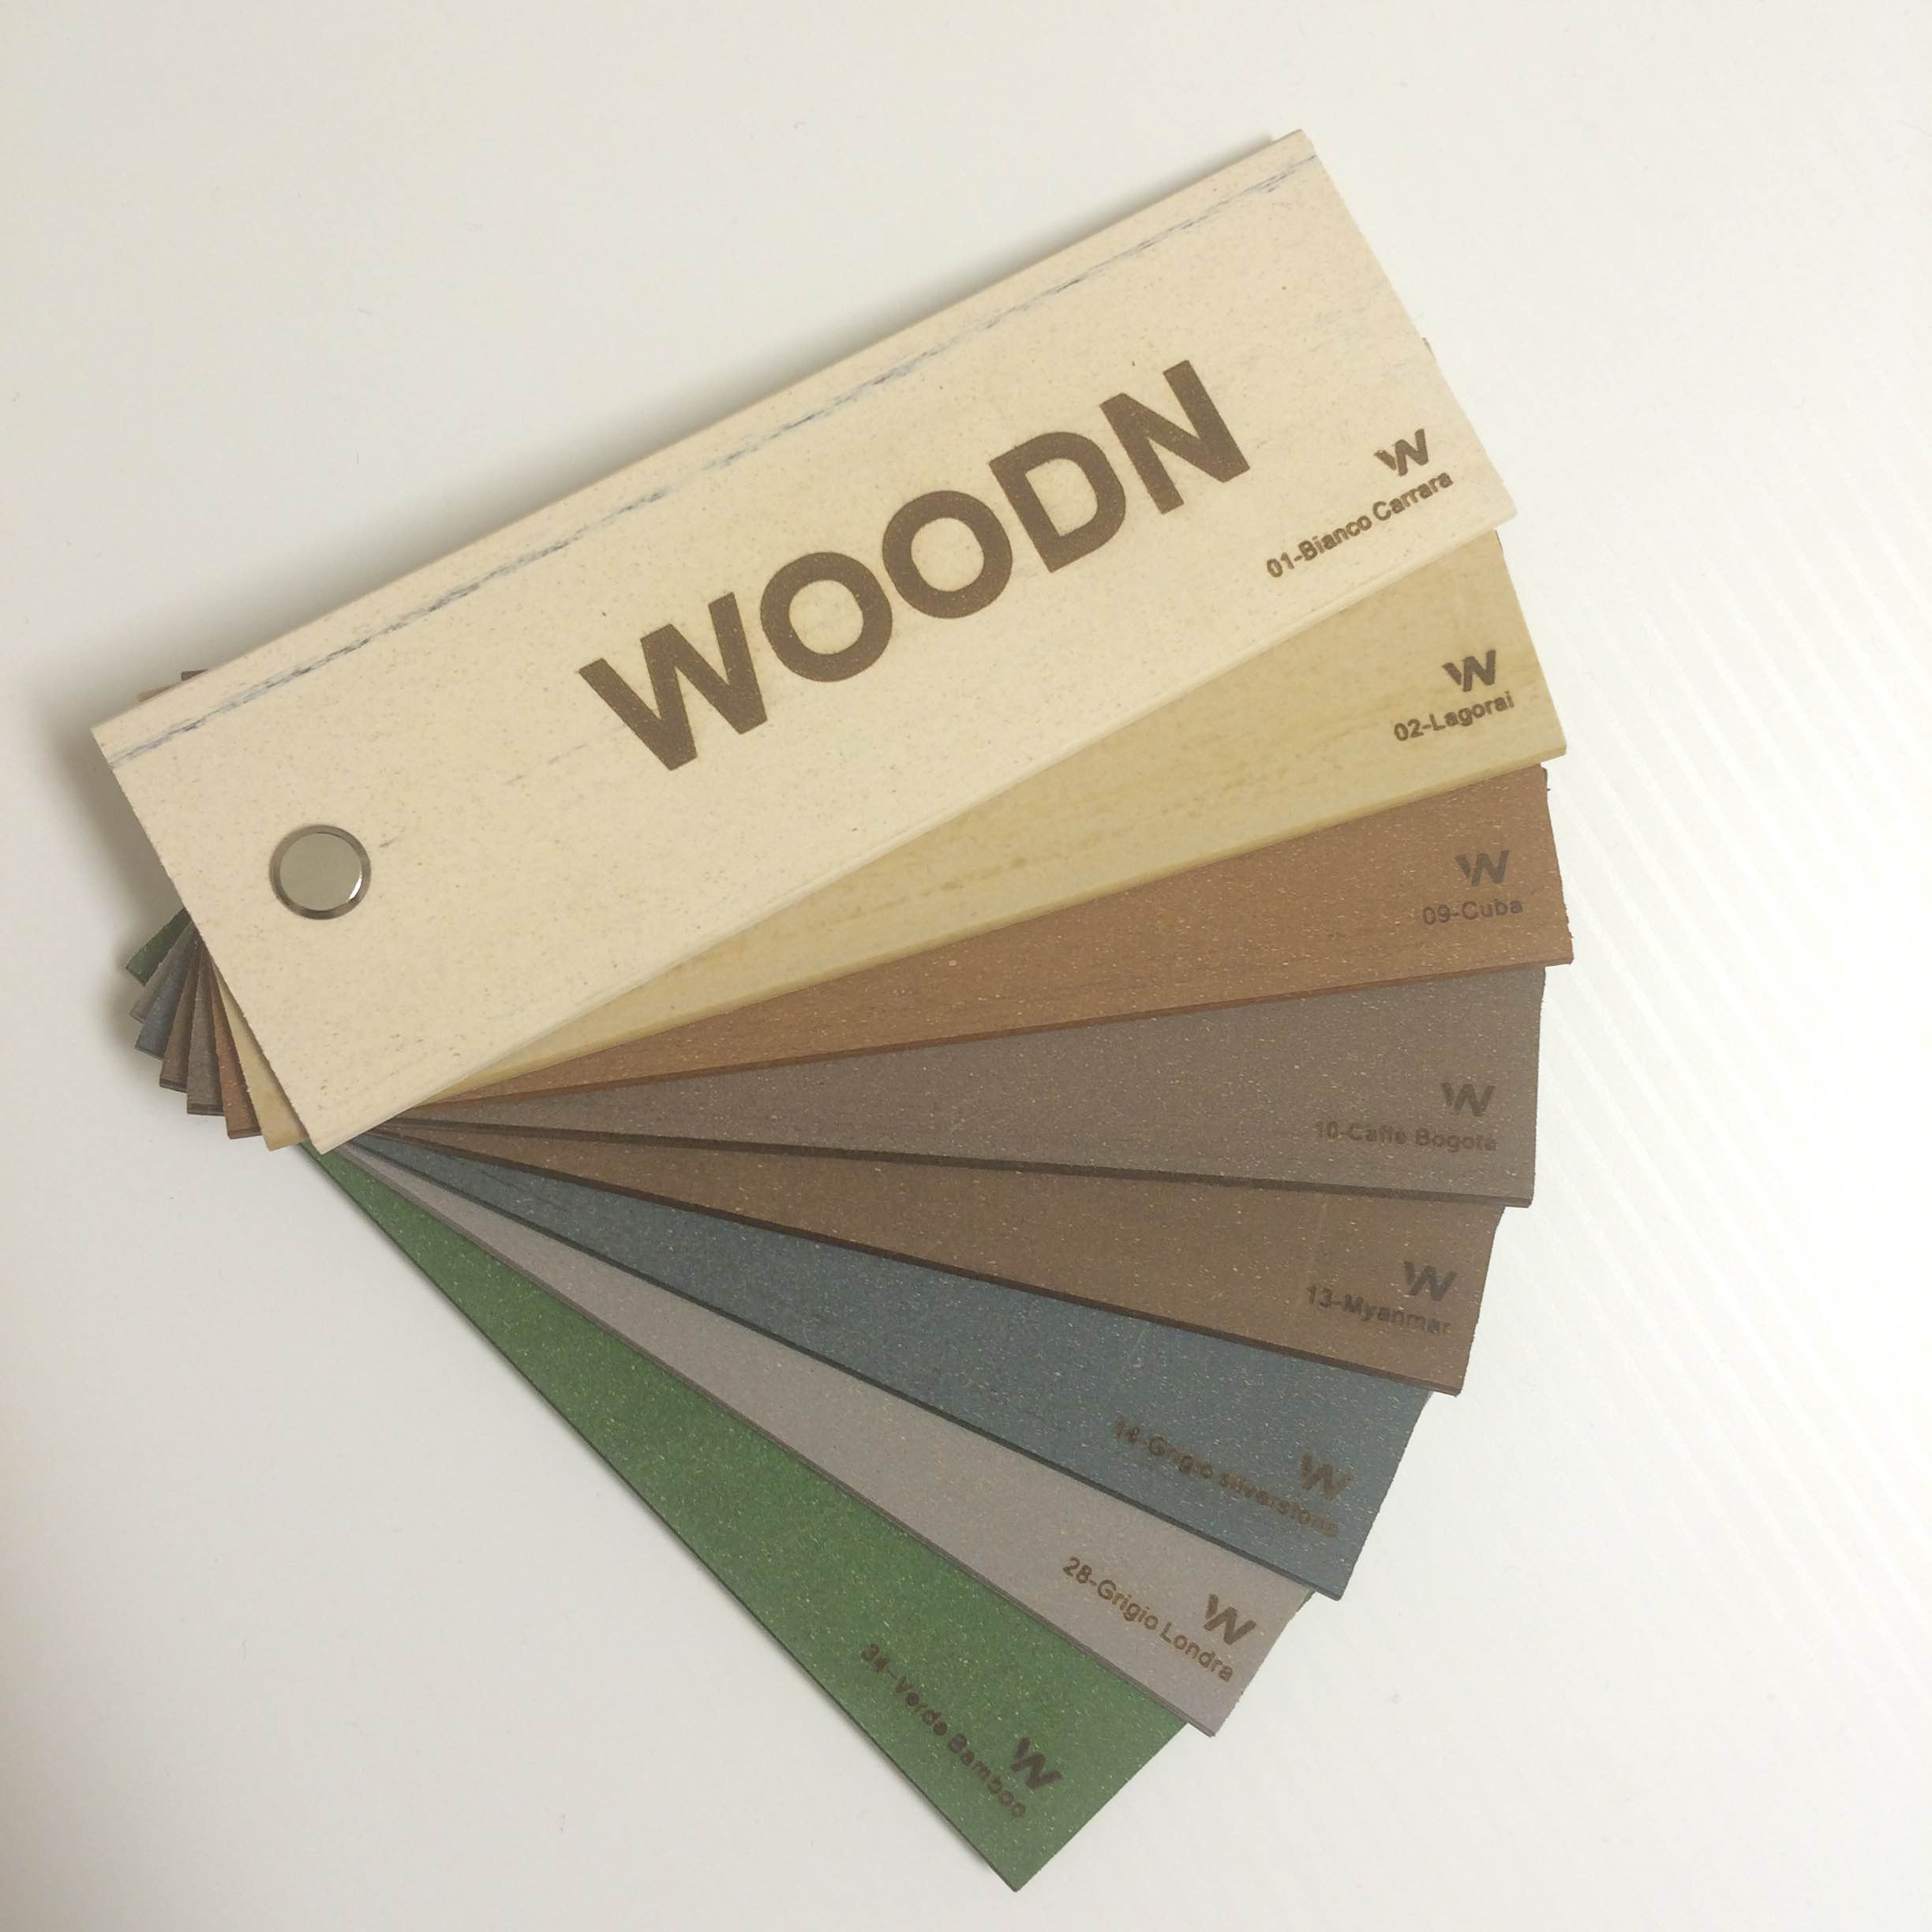 WoodN Outdoor color palette